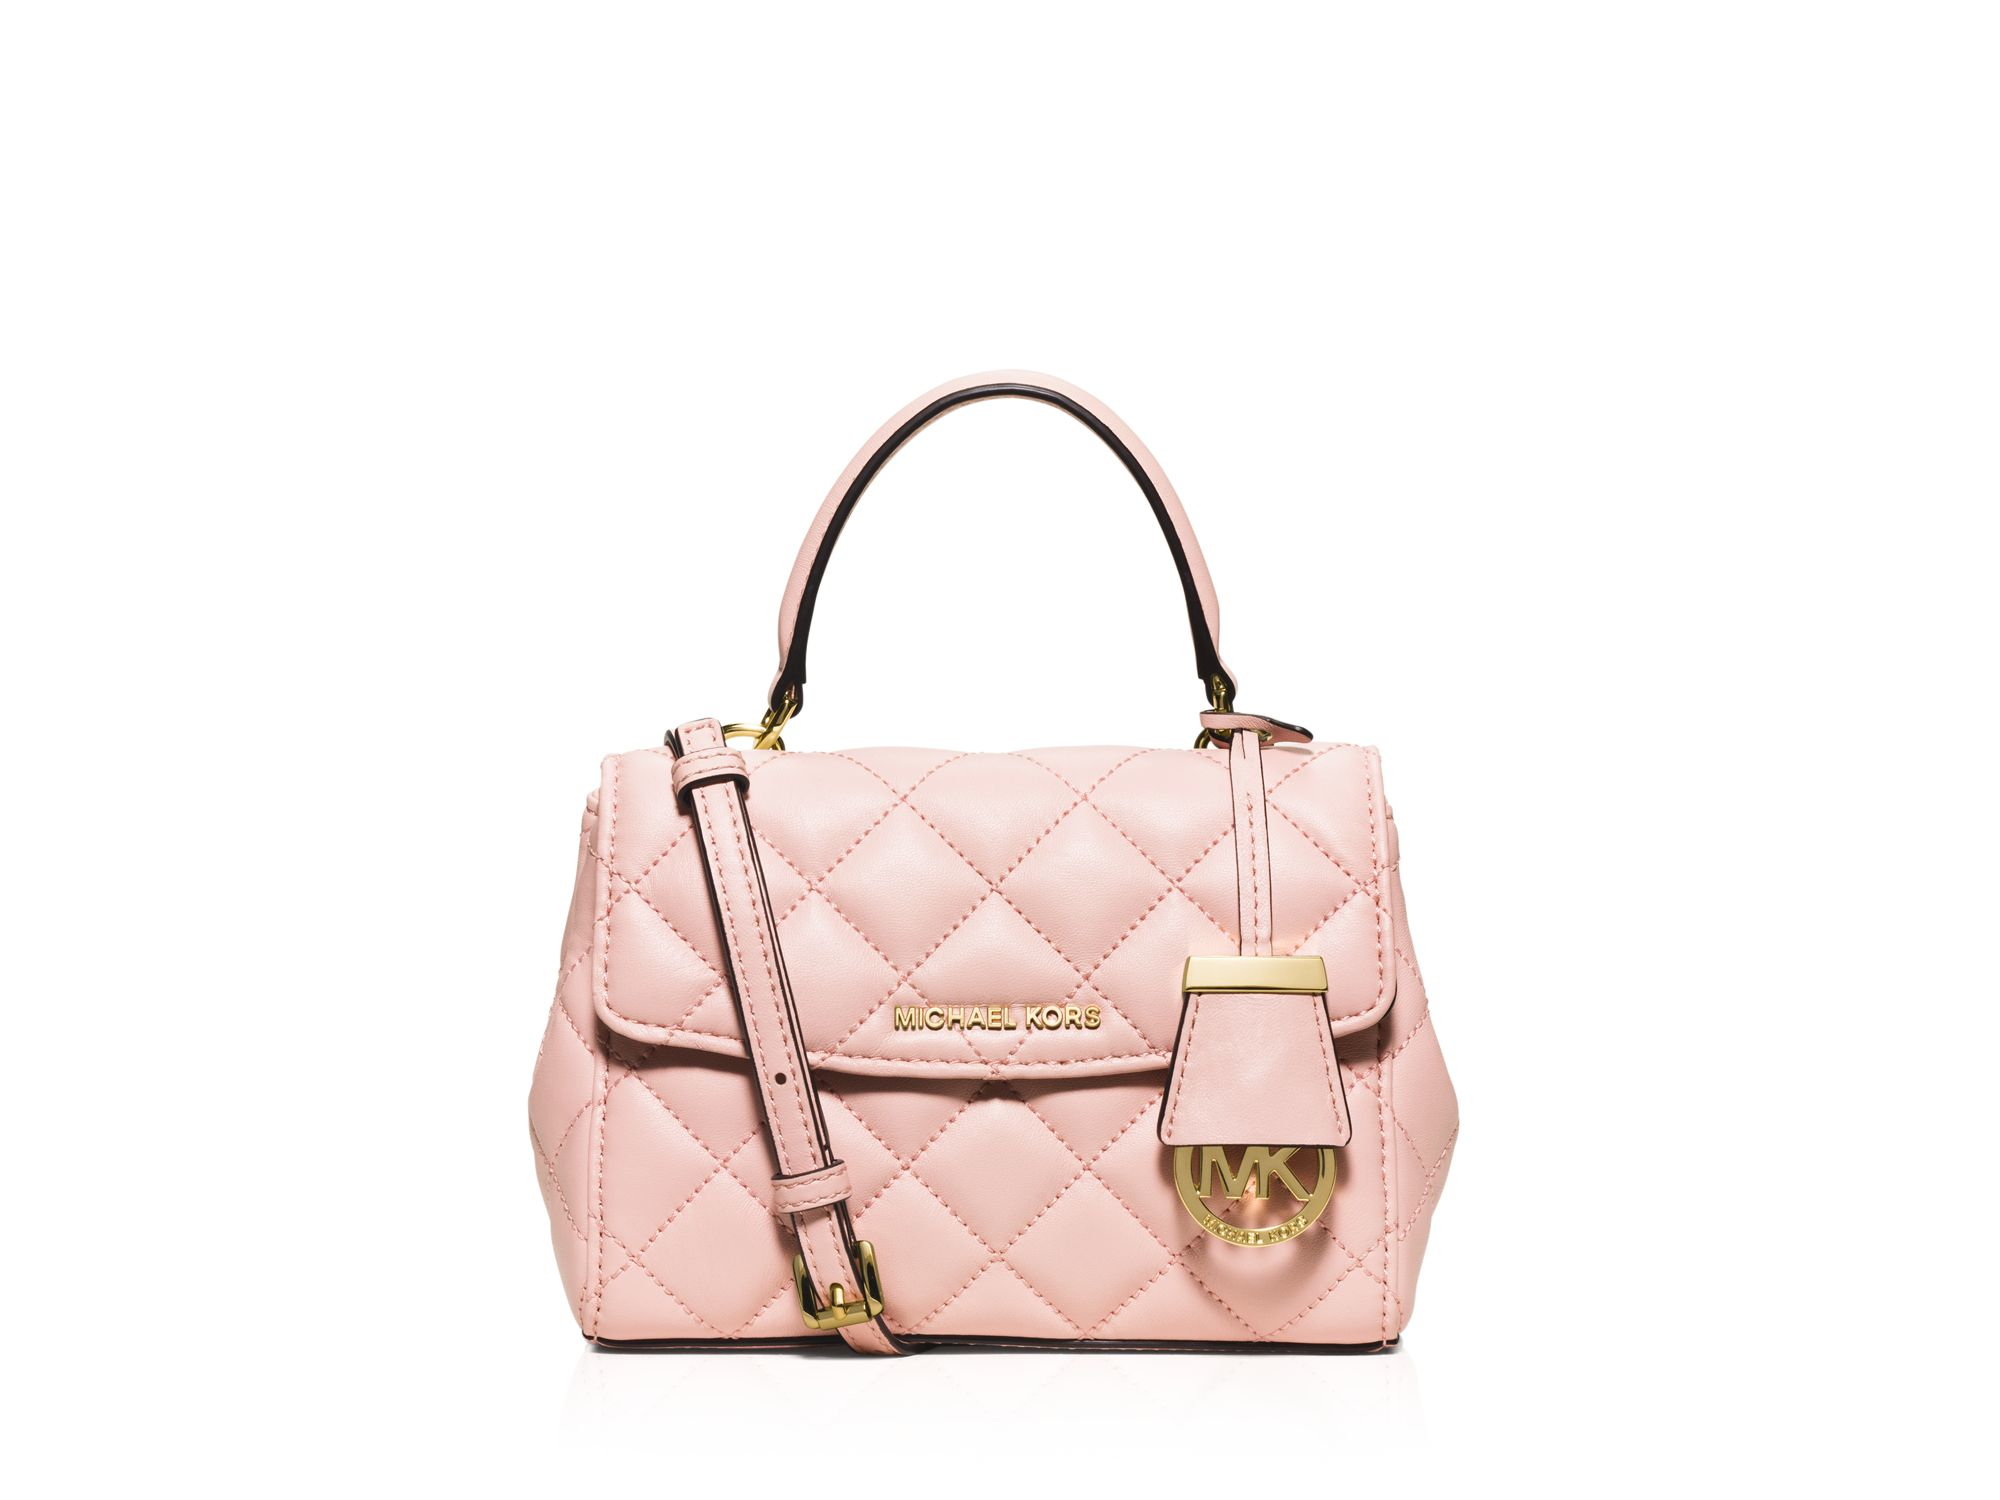 c01419ea7846 Gallery. Previously sold at: Bloomingdale's · Women's Michael Kors Quilted  Bag